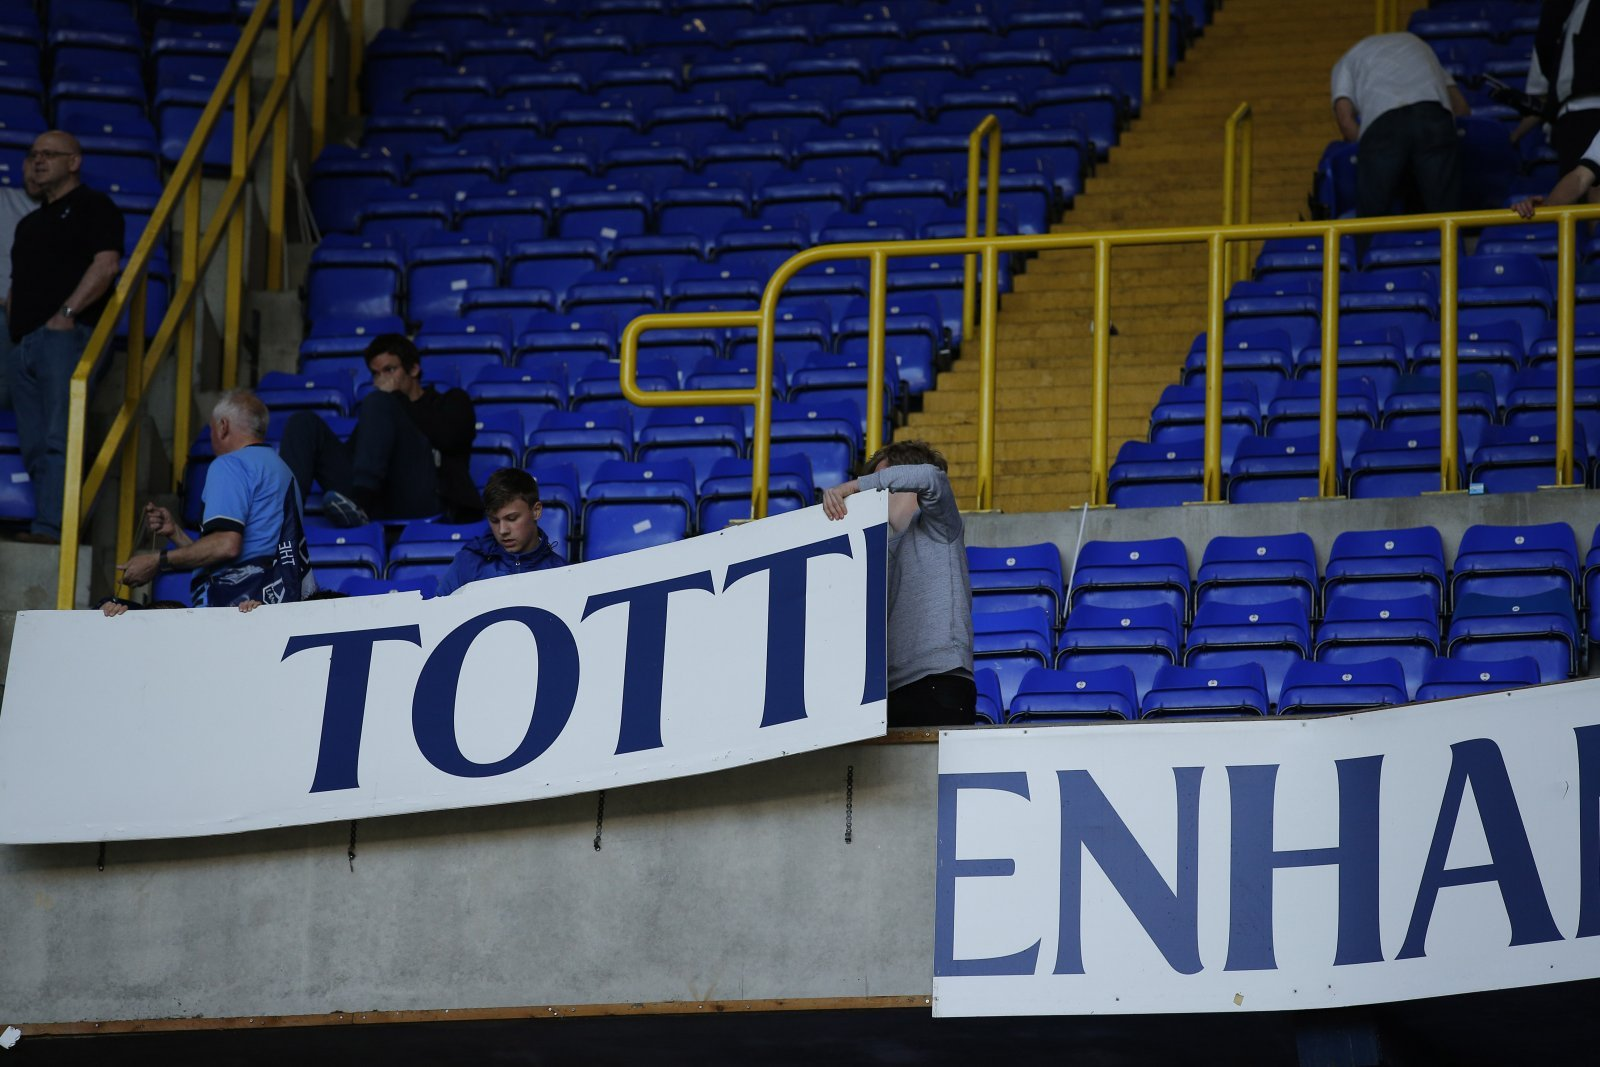 Tottenham fans far from pleased with club's latest tweet